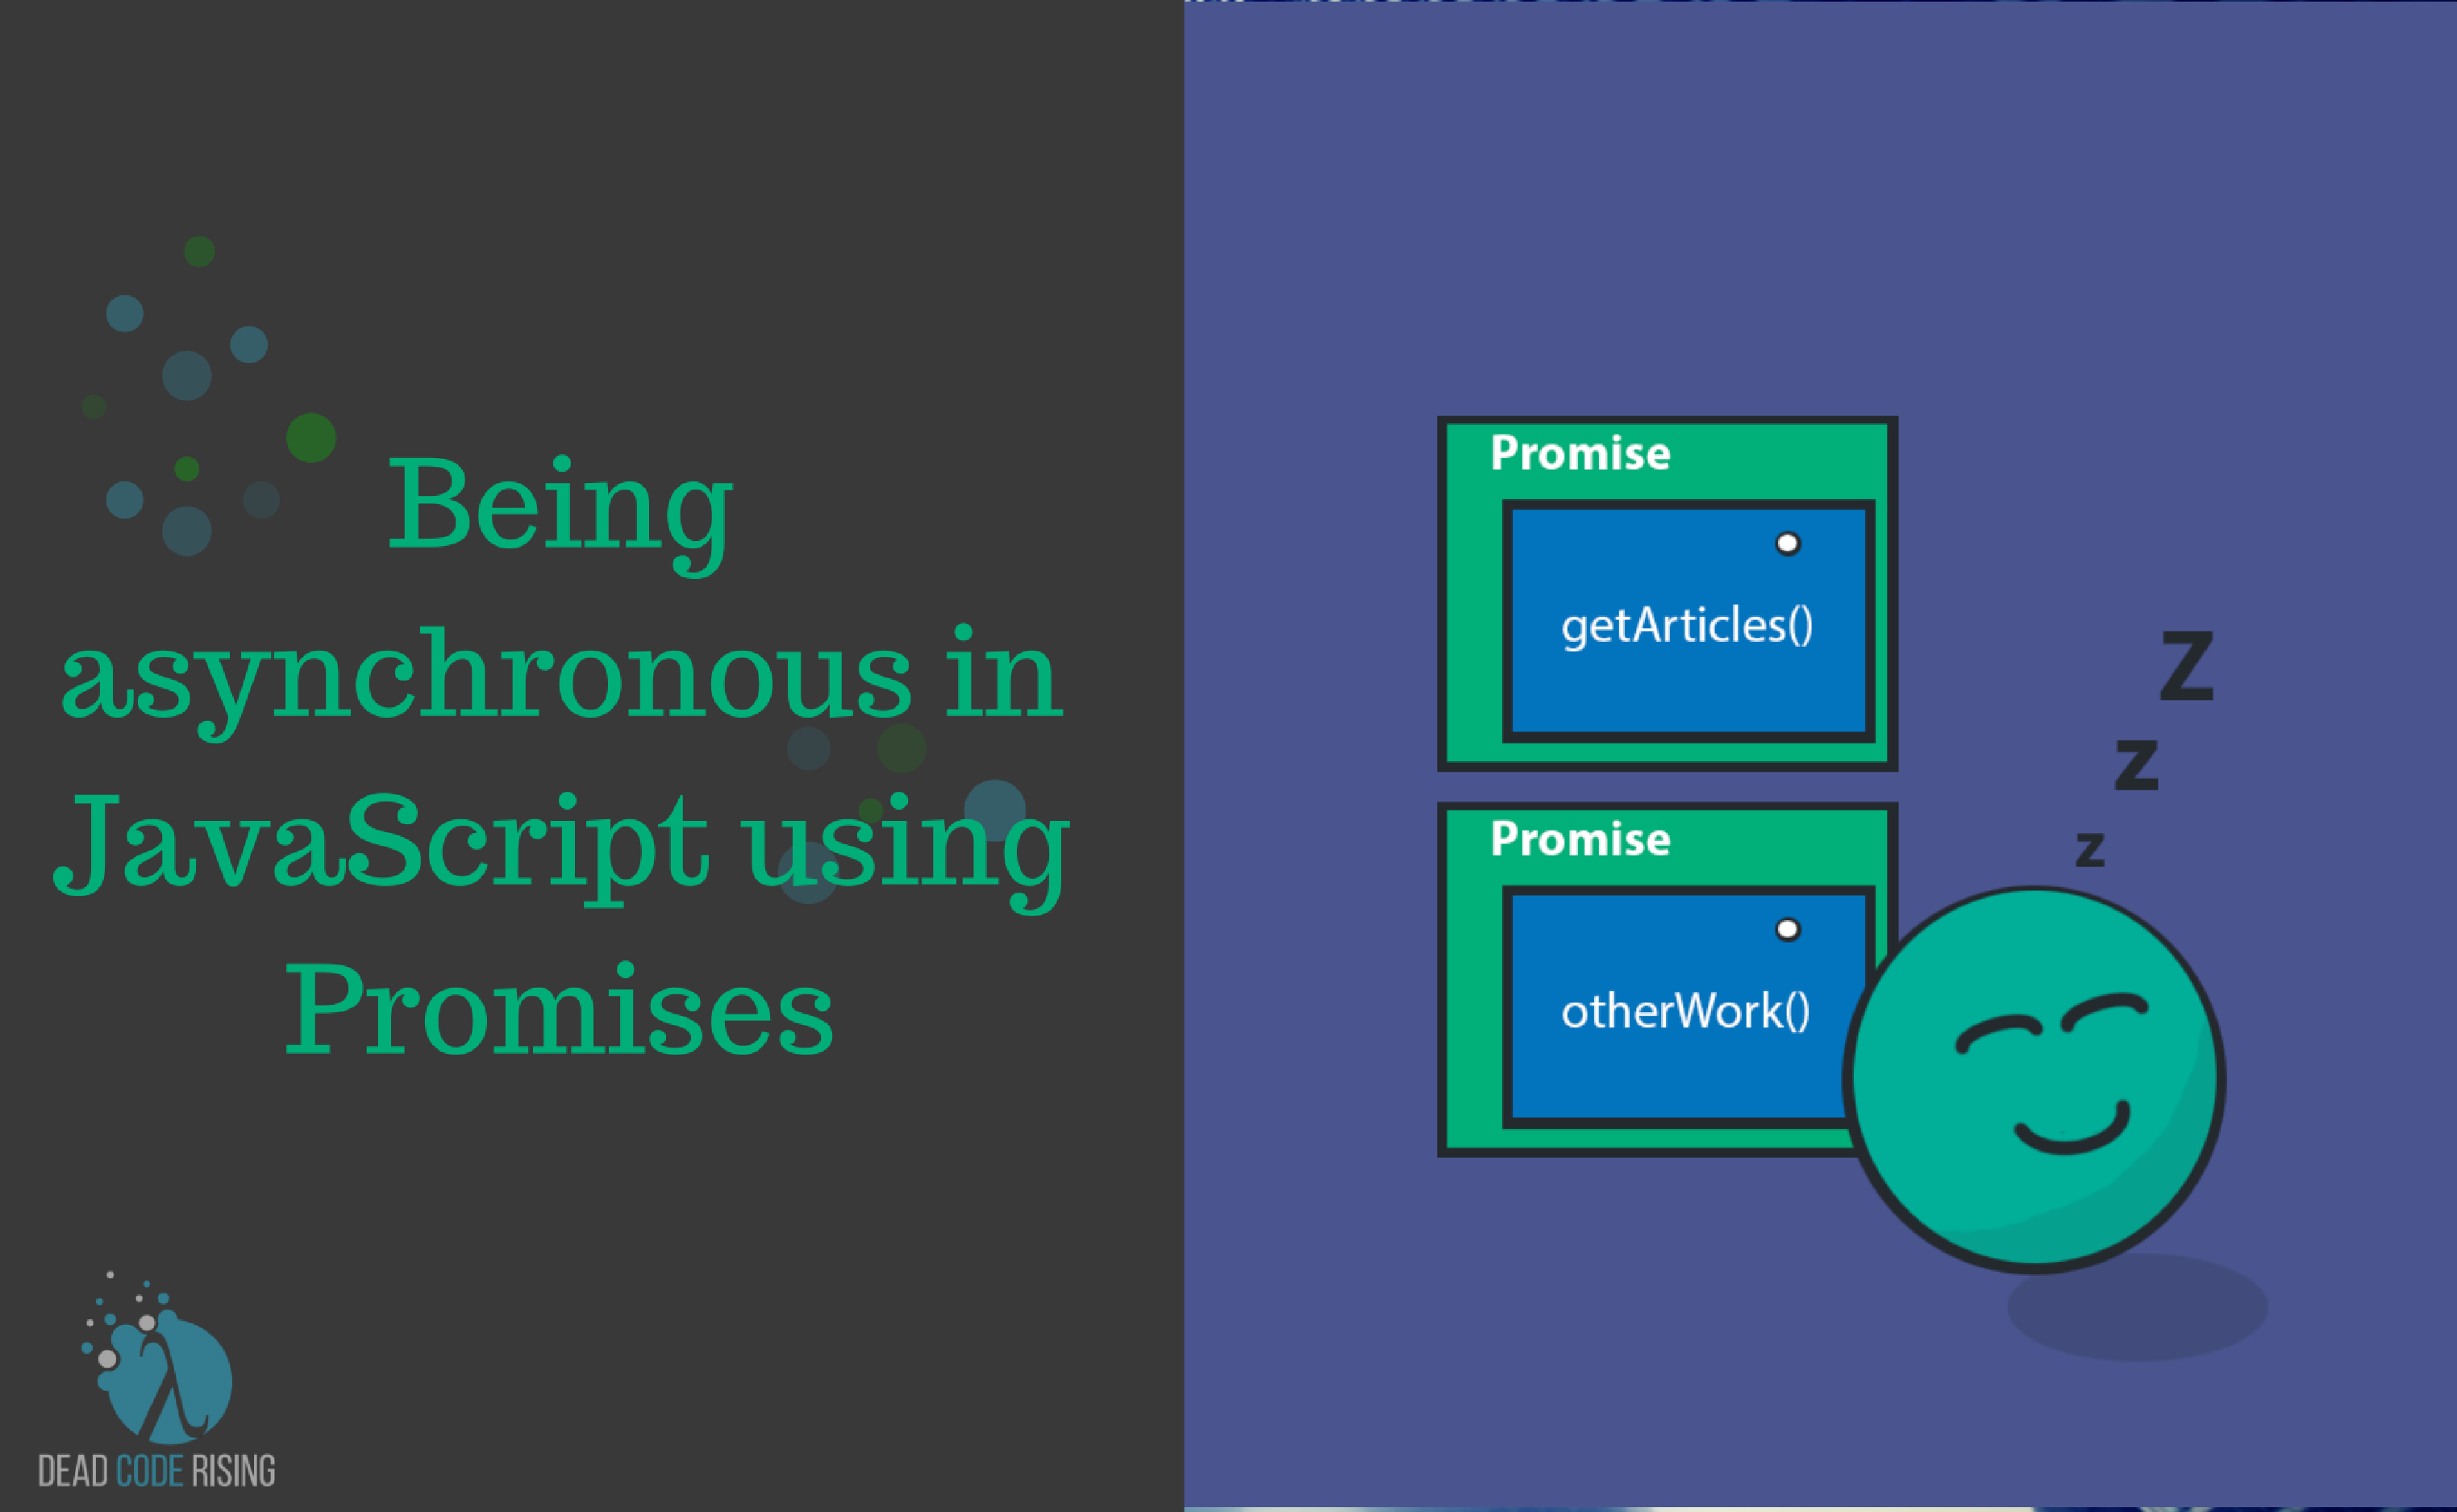 Being asynchronous in JavaScript using Promises